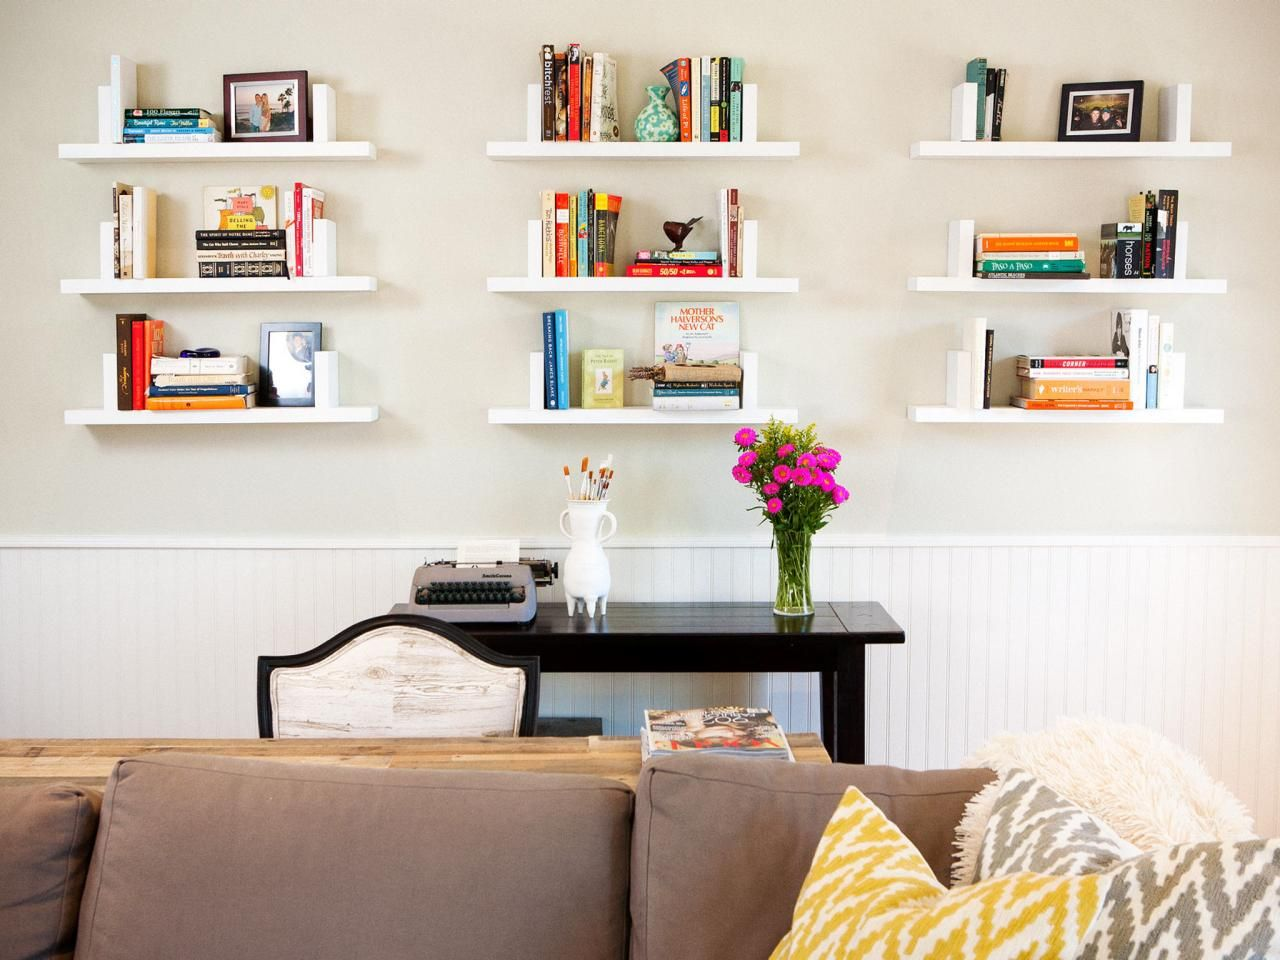 White Floating Shelves Display Books And Photos In This Transitional Living Room Hung Above